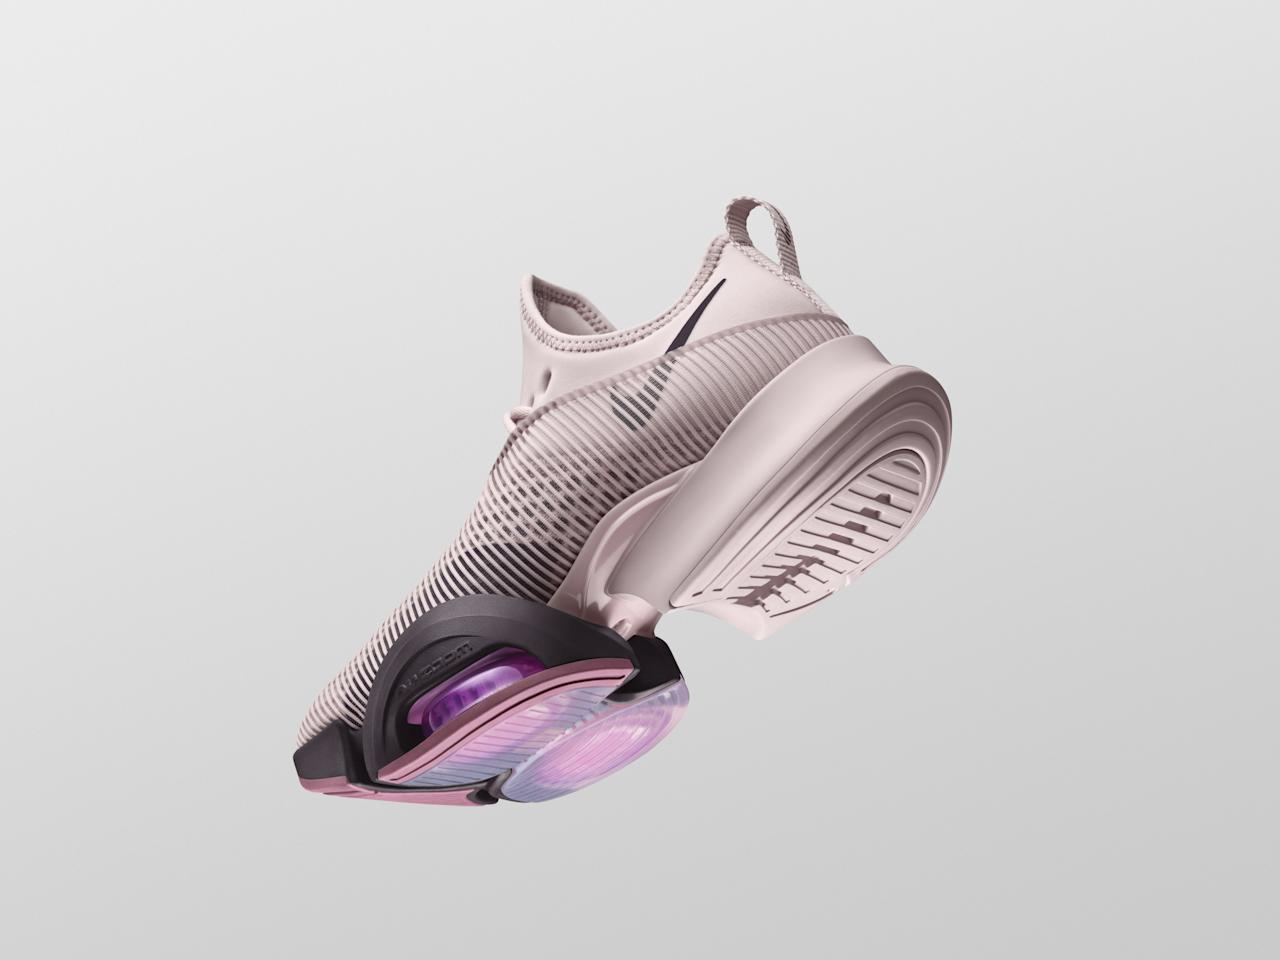 """$120, Nike. <a href=""""https://www.nike.com/t/air-zoom-superrep-womens-hiit-class-shoe-4FnmRp"""">Get it now!</a>"""